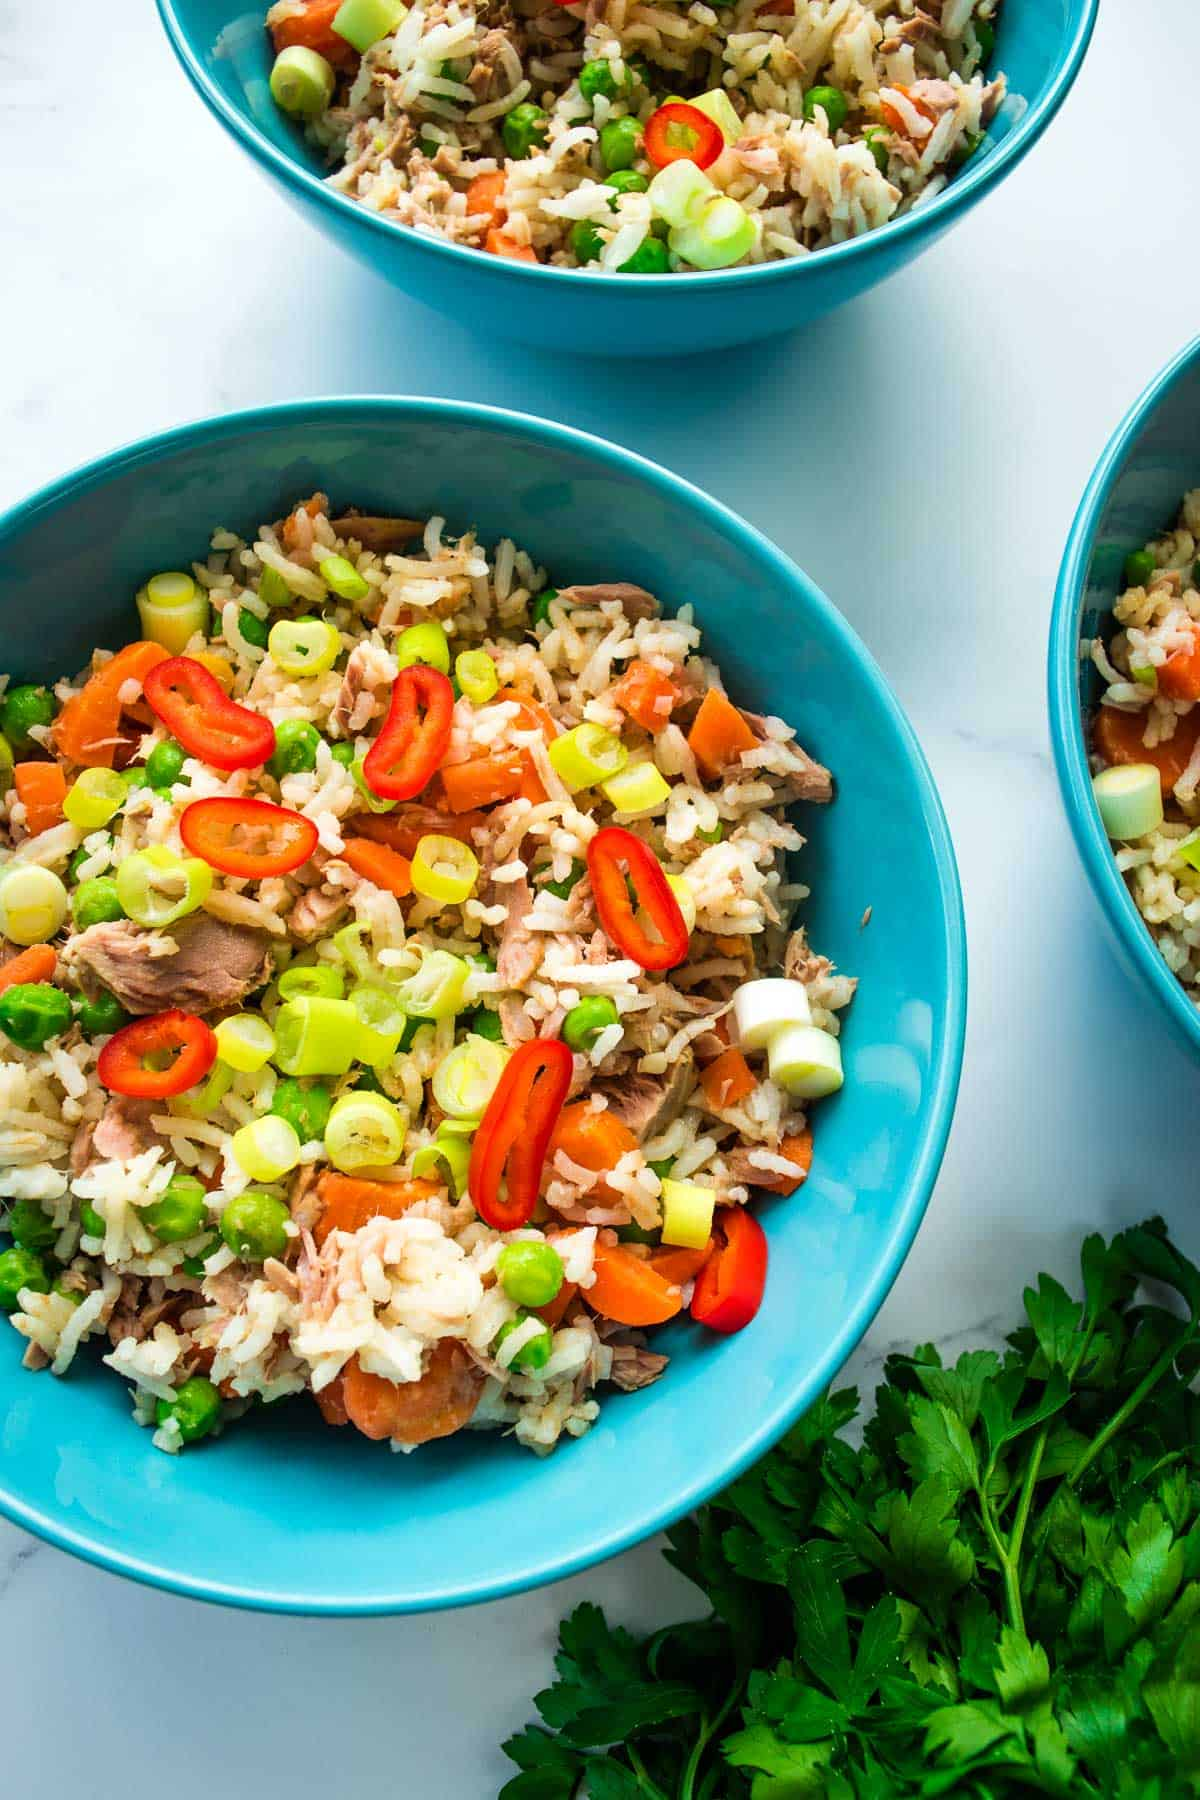 Fried rice in blue bowls.